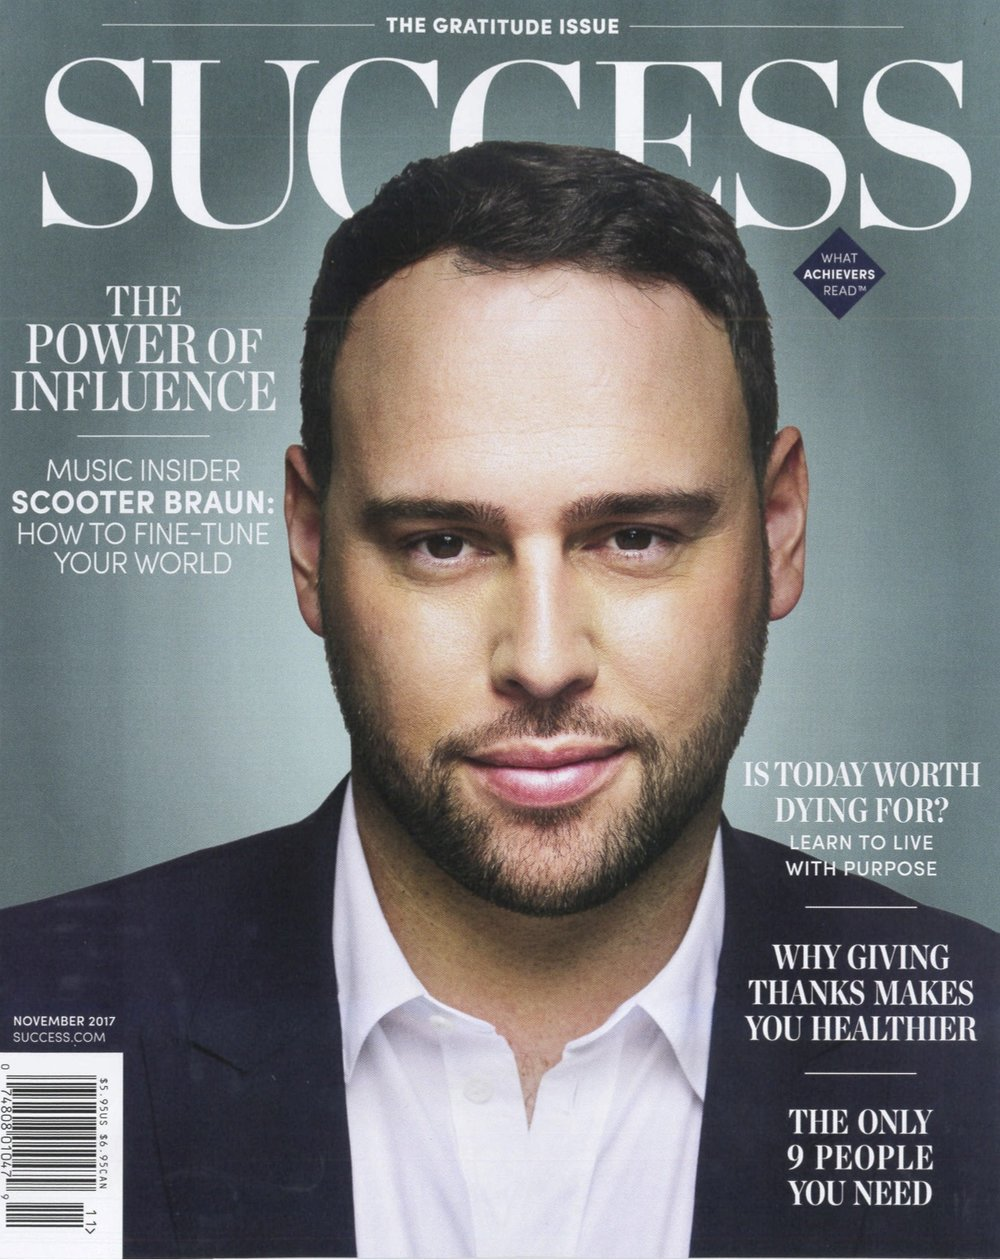 SUCCESS Magazine 10.2.17 copy.jpg